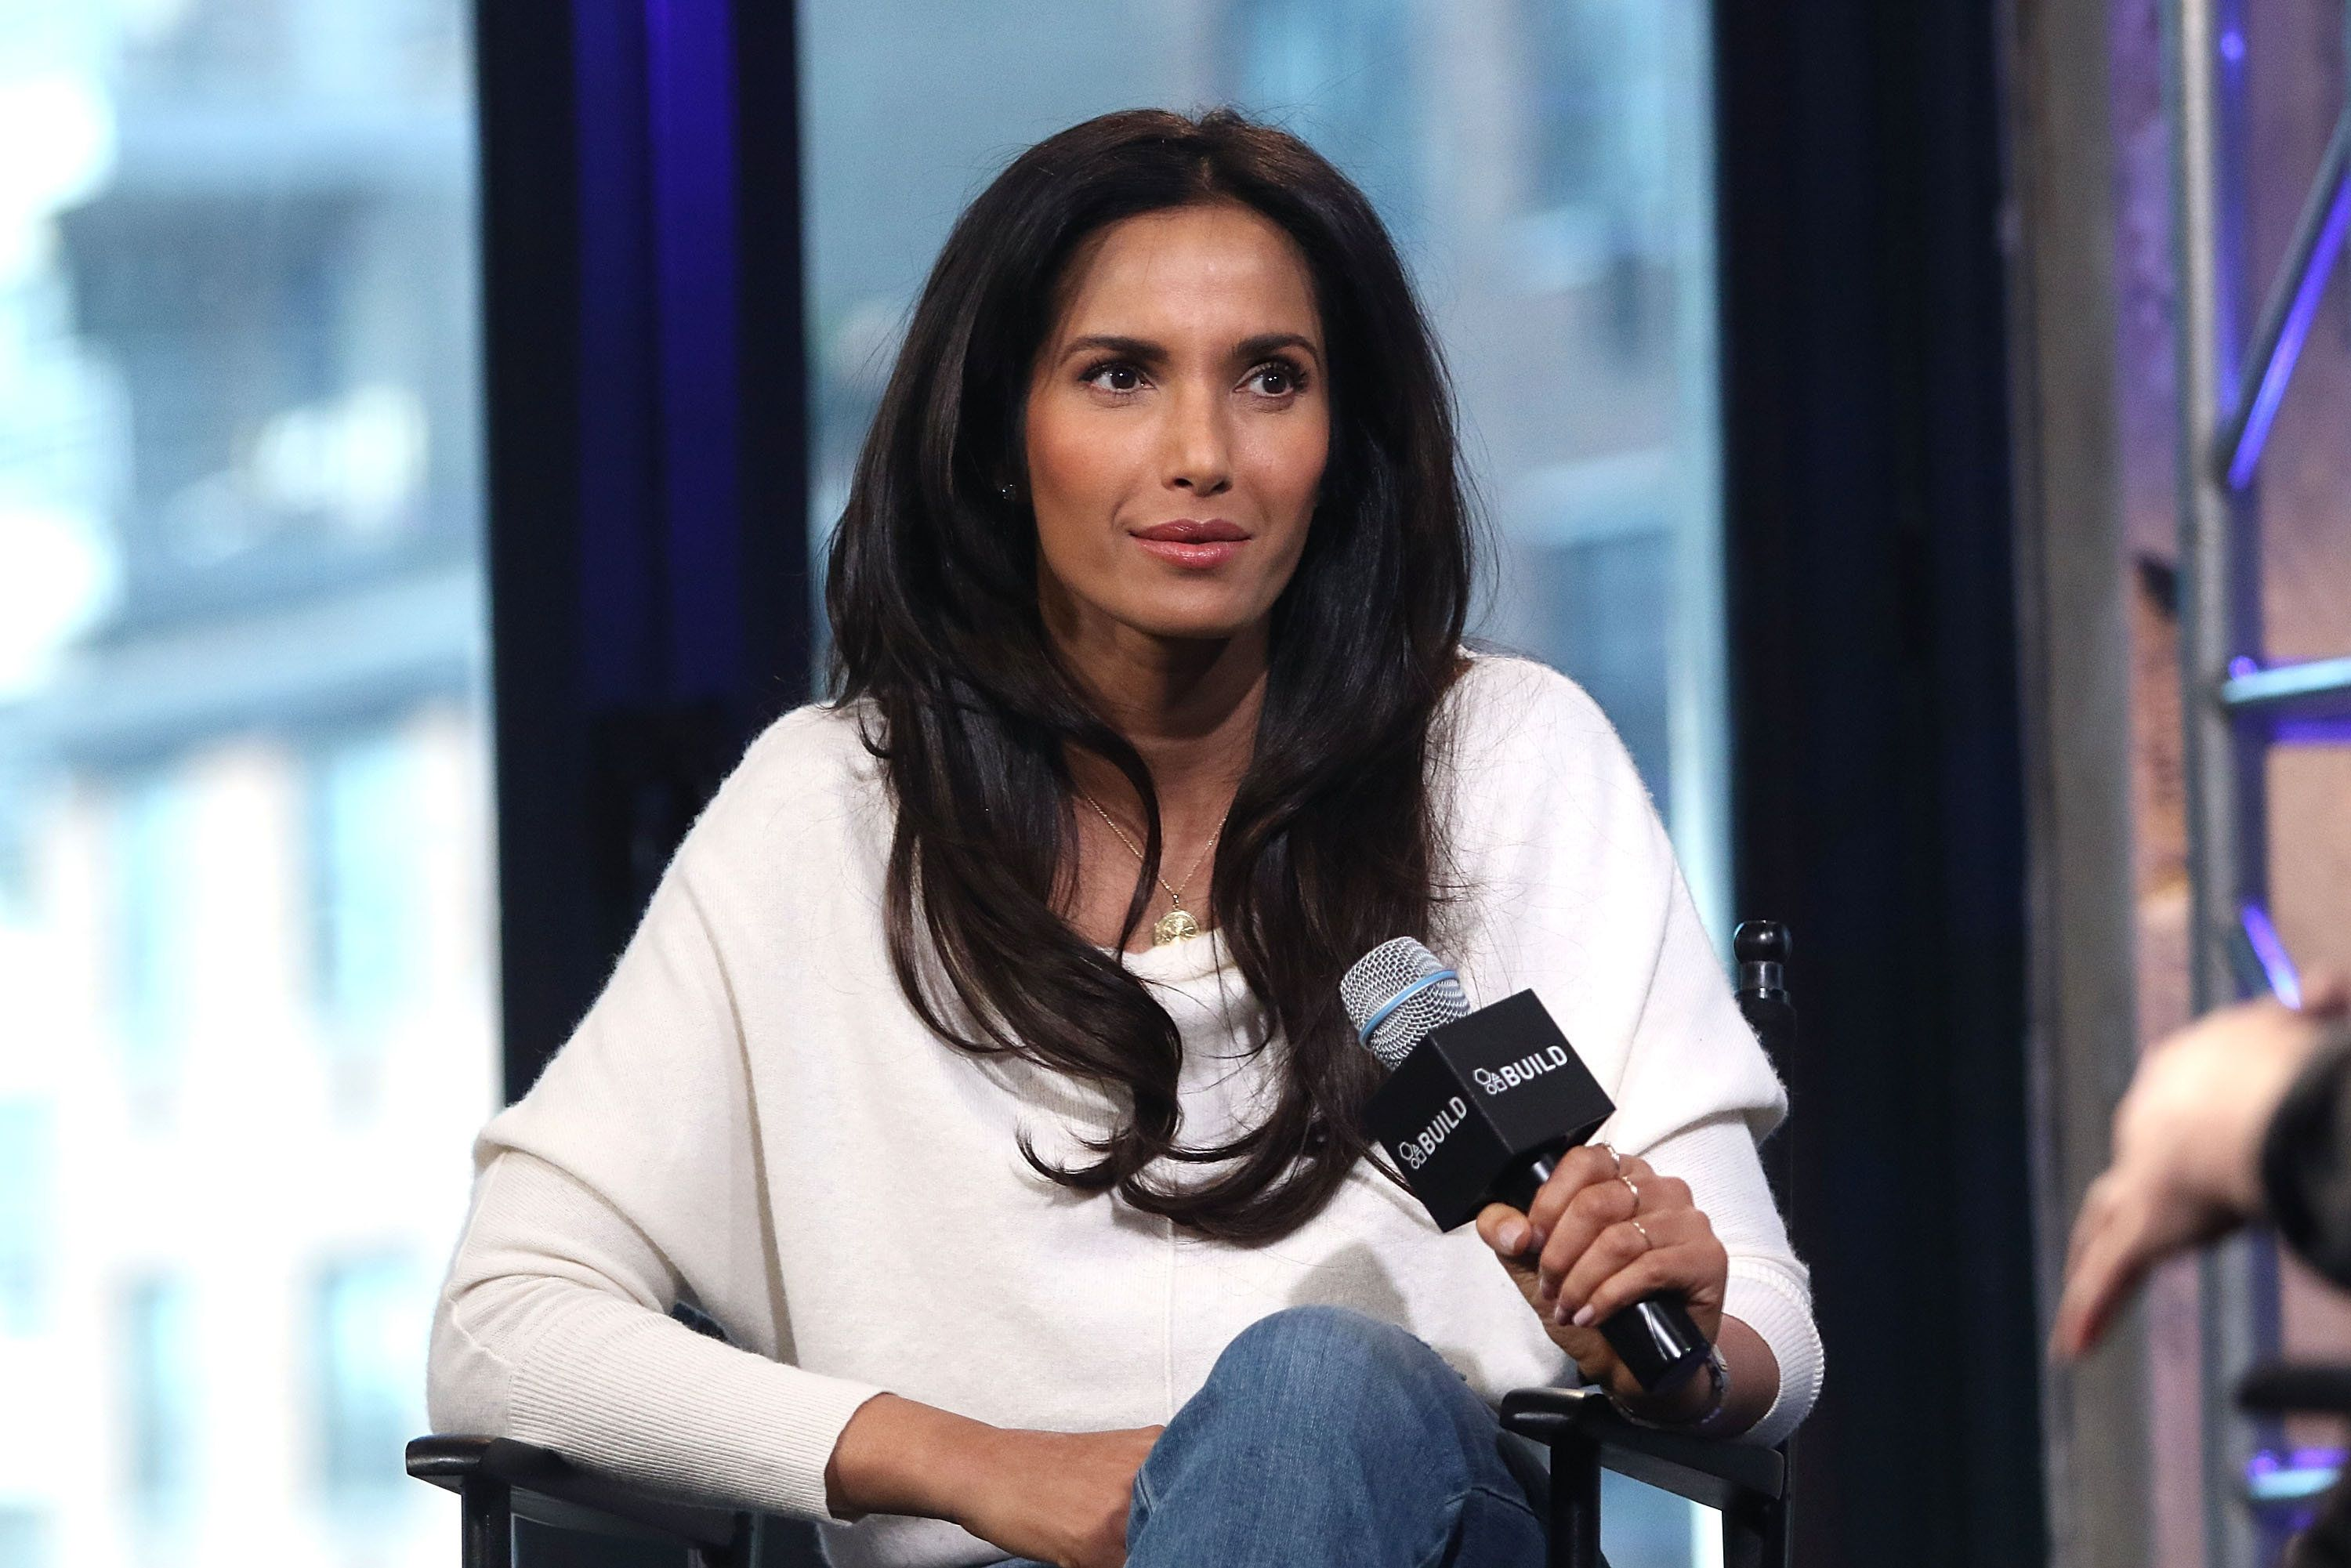 NEW YORK, NY - MARCH 08:  Padma Lakshmi attends AOL Build Speakers Series - to discuss 'Top Chef' and 'Love, Loss and What We Ate' at AOL Studios In New York on March 8, 2016 in New York City.  (Photo by Laura Cavanaugh/FilmMagic)